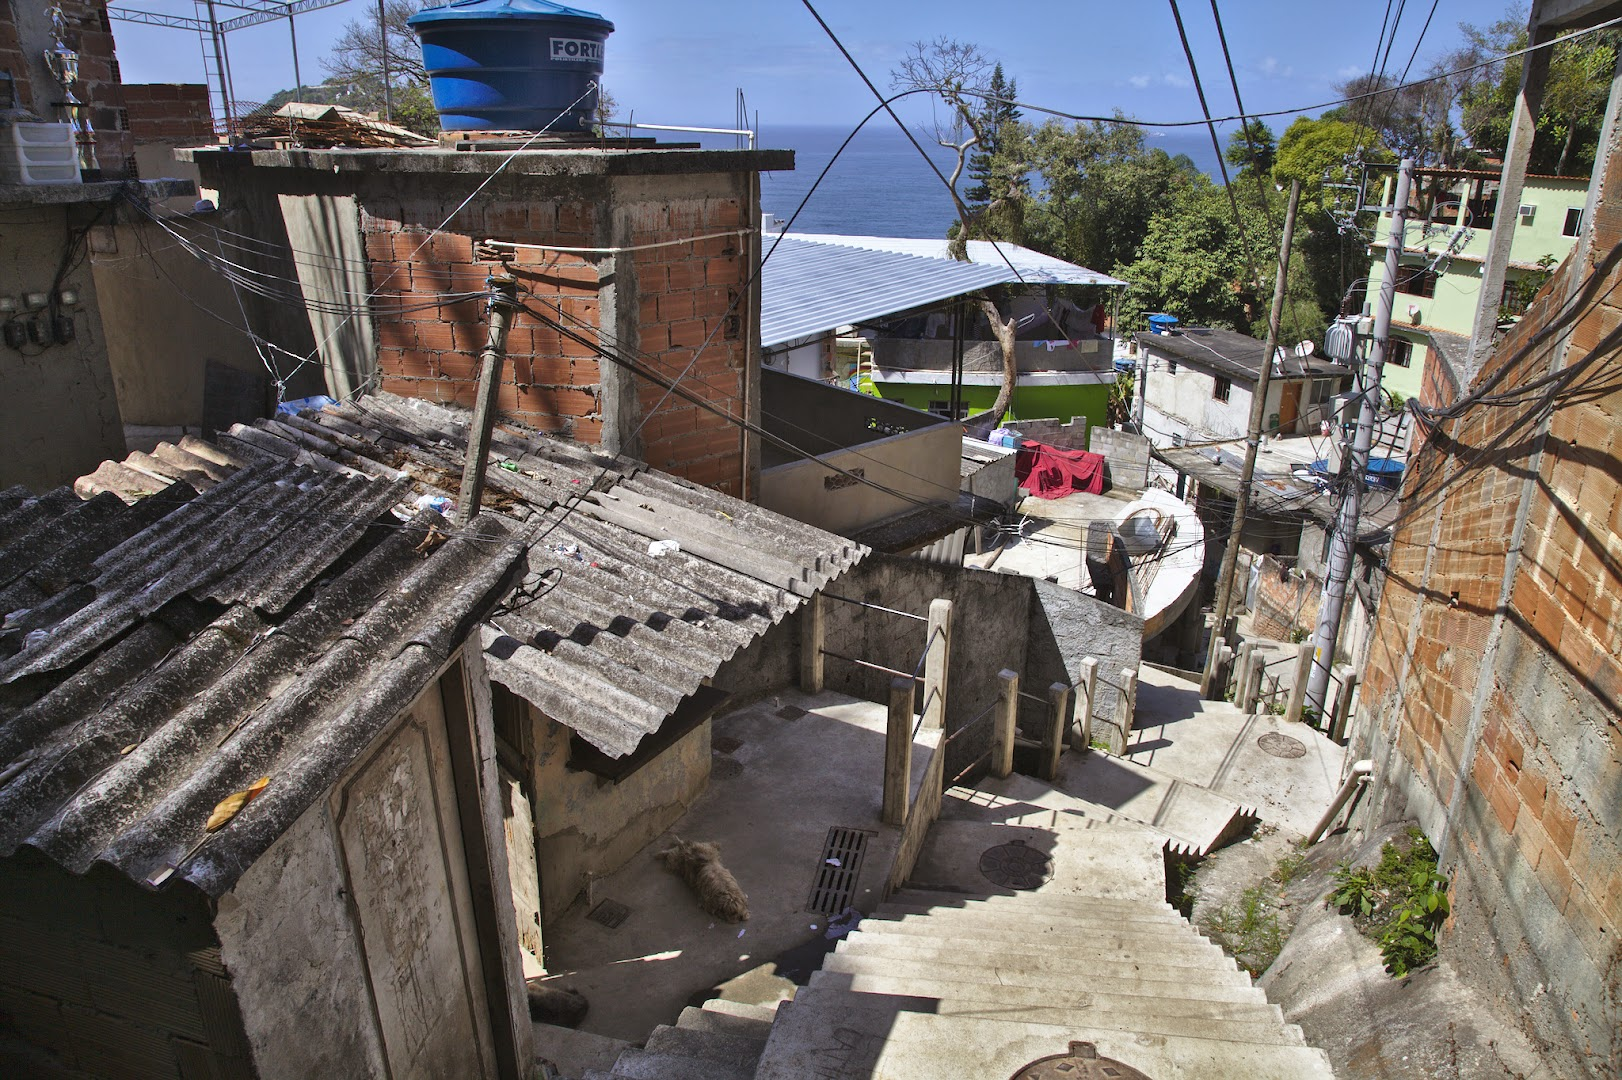 Favelas have numerous stairs and labyrinth-like streets. Lots of places for drug dealers to hide :-)